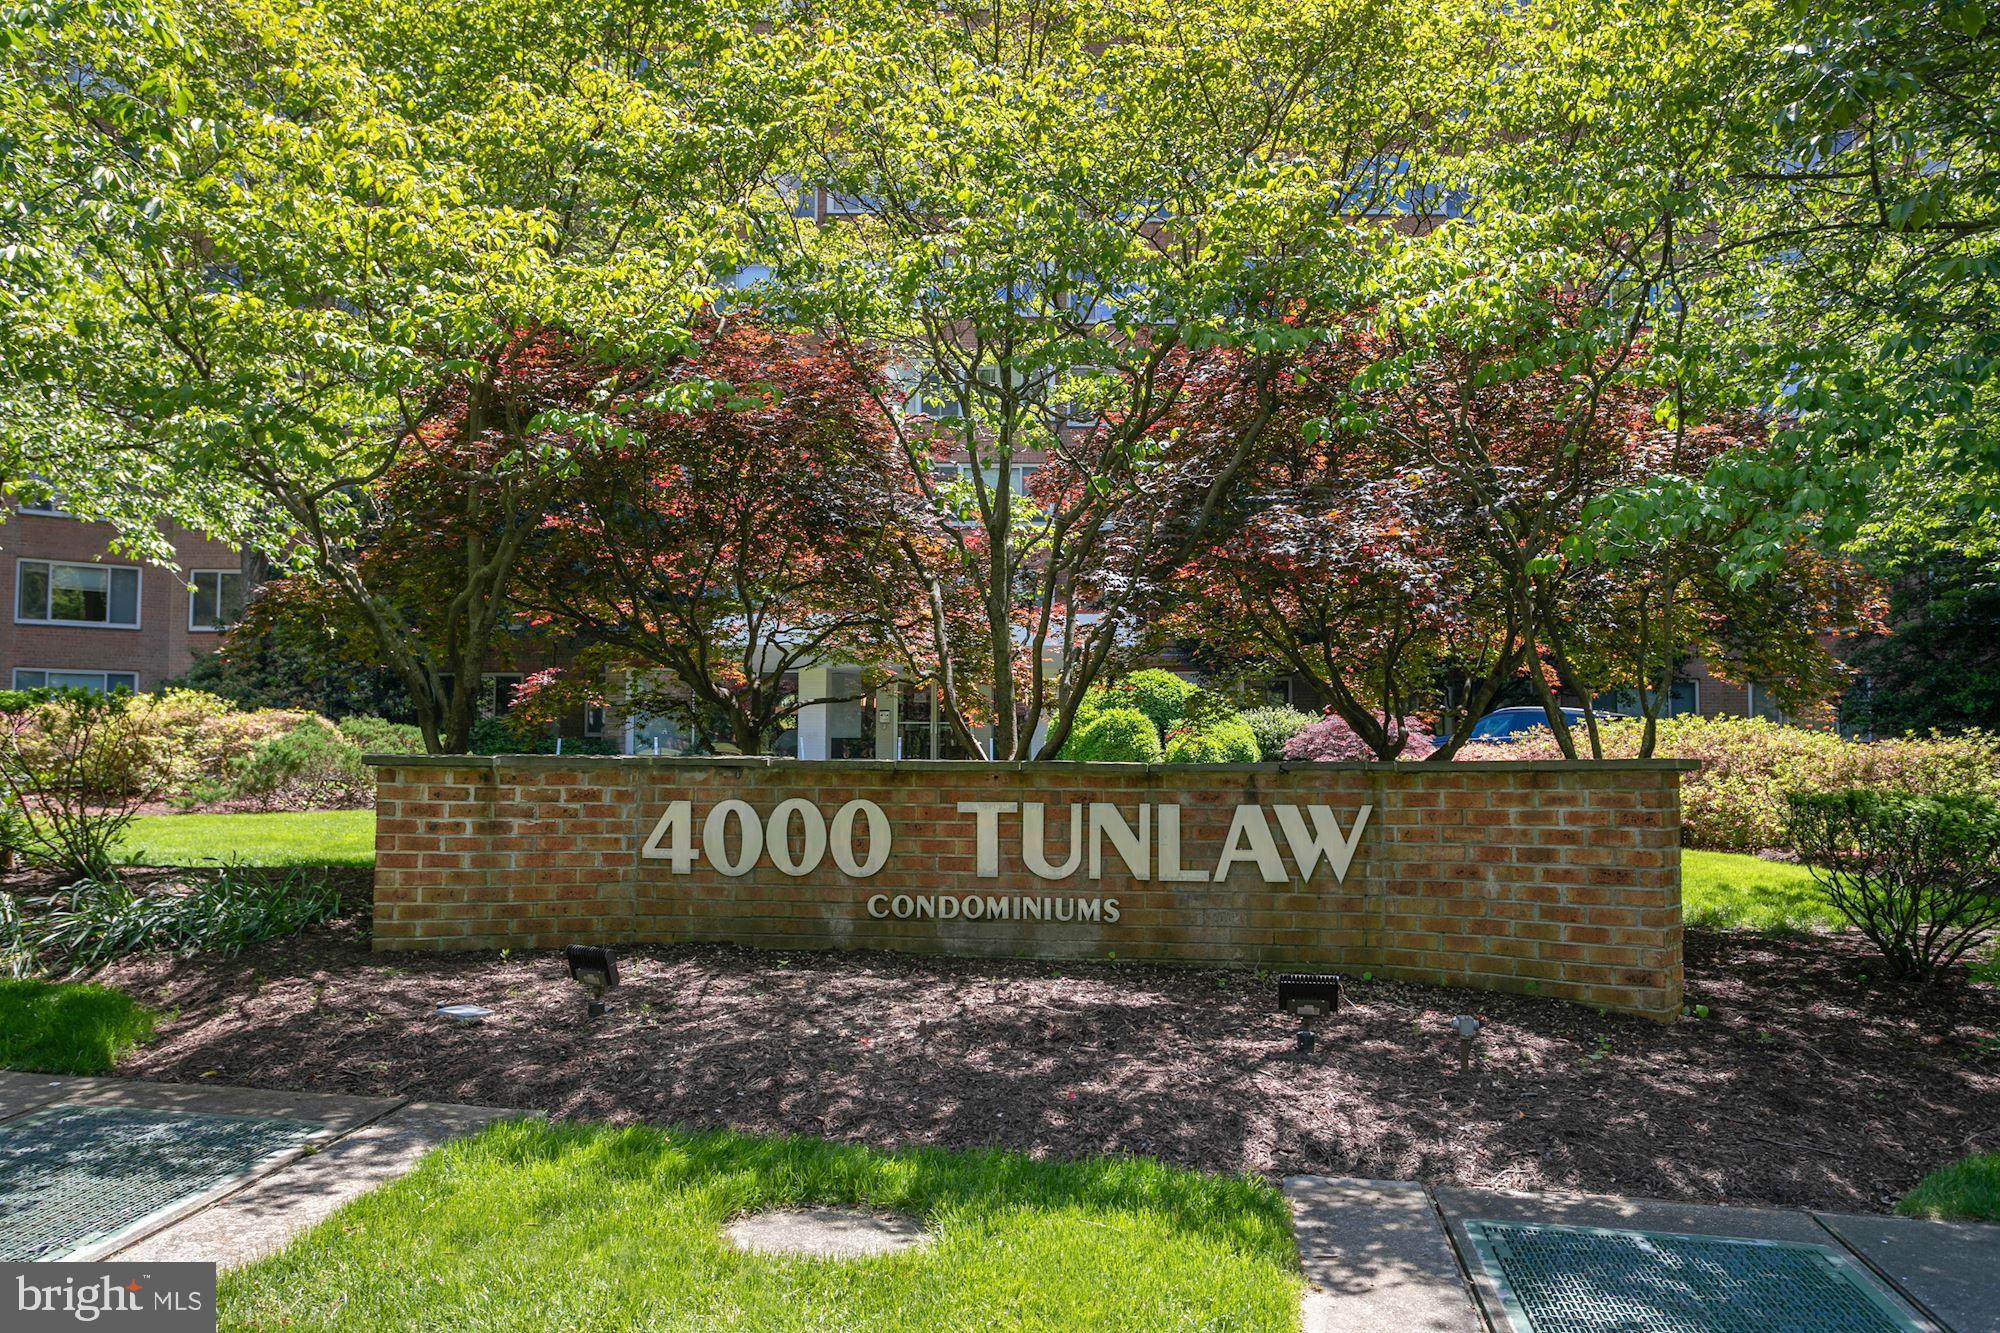 Nestled within 4000 Tunlaw is this treetop 1 bedroom/1 bathroom oasis. This spacious condo with ampl